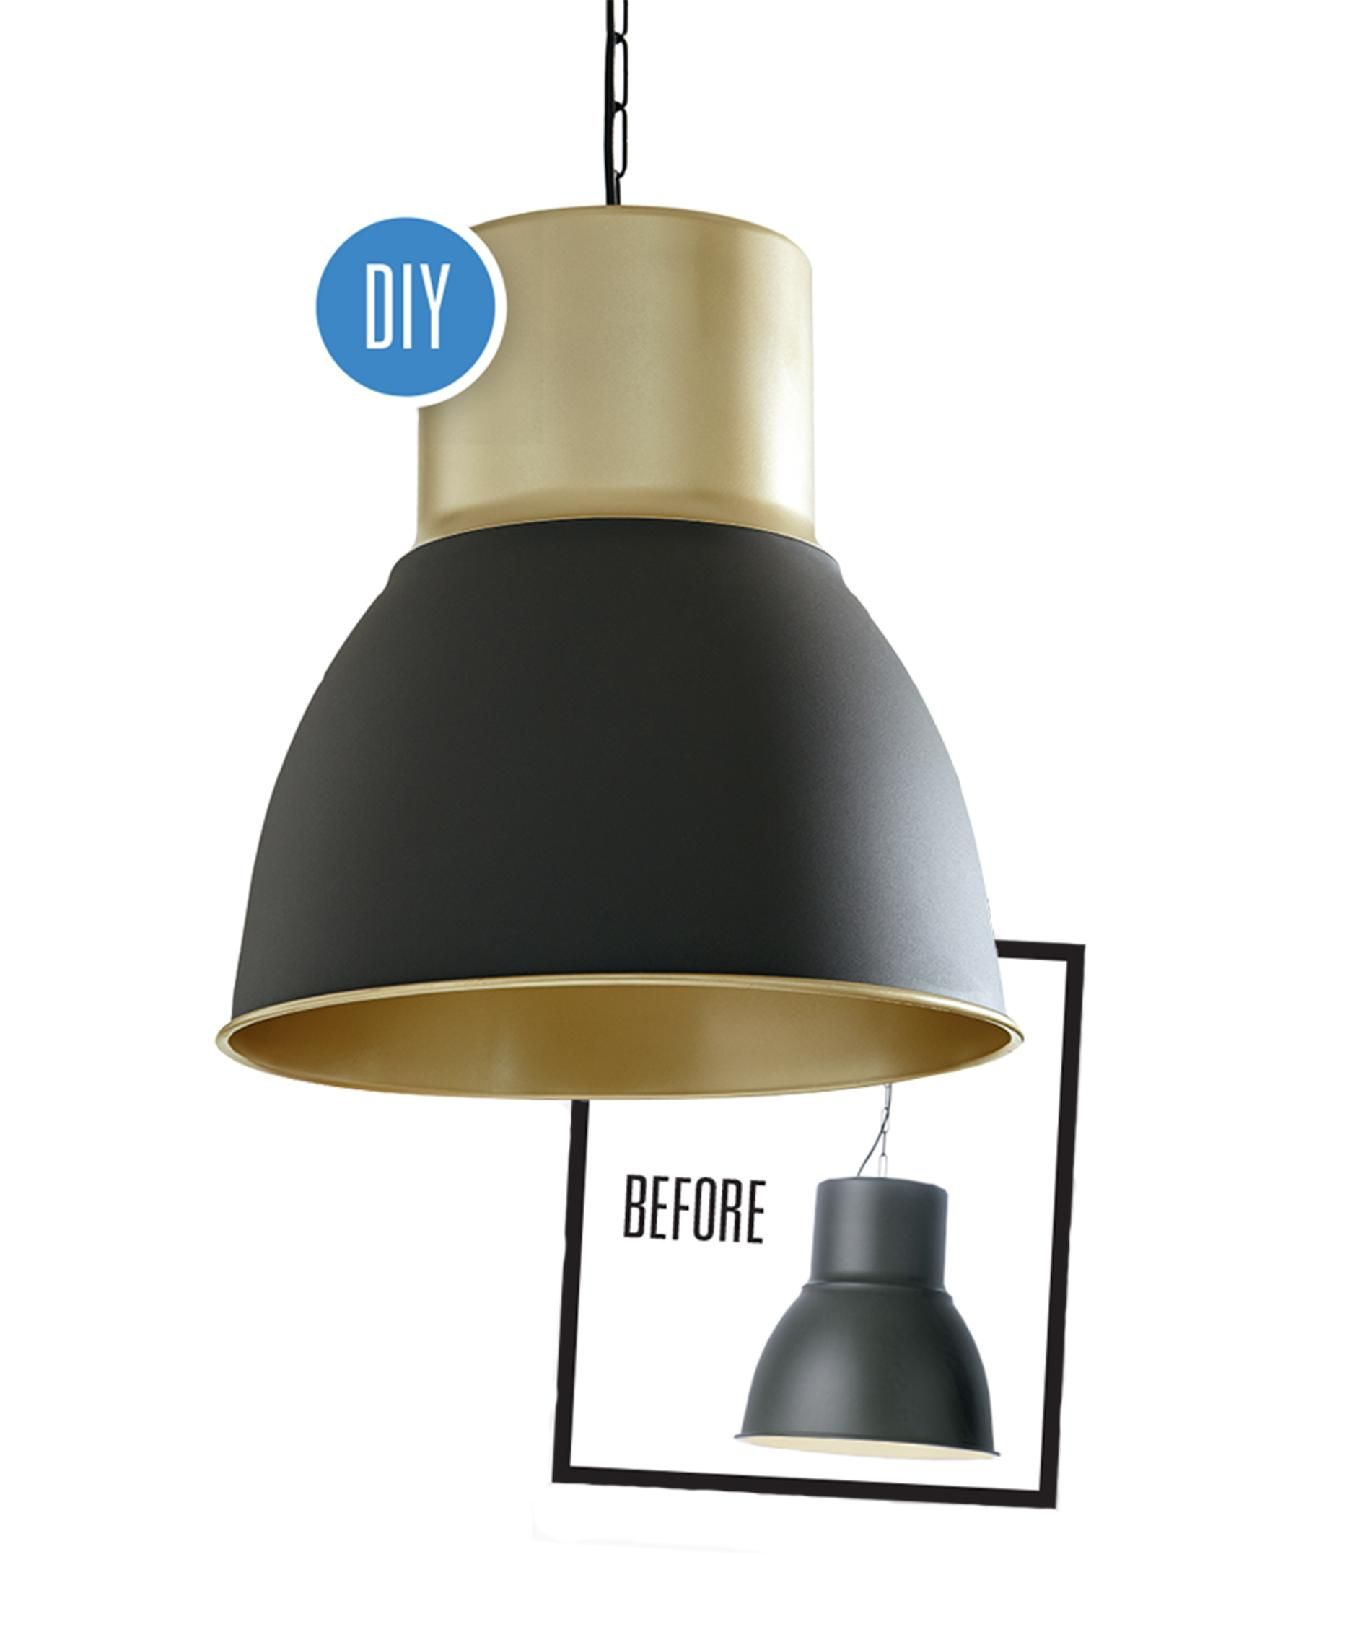 6 Must Try Ikea Hacks For Your Home In 2020 Diy Pendant